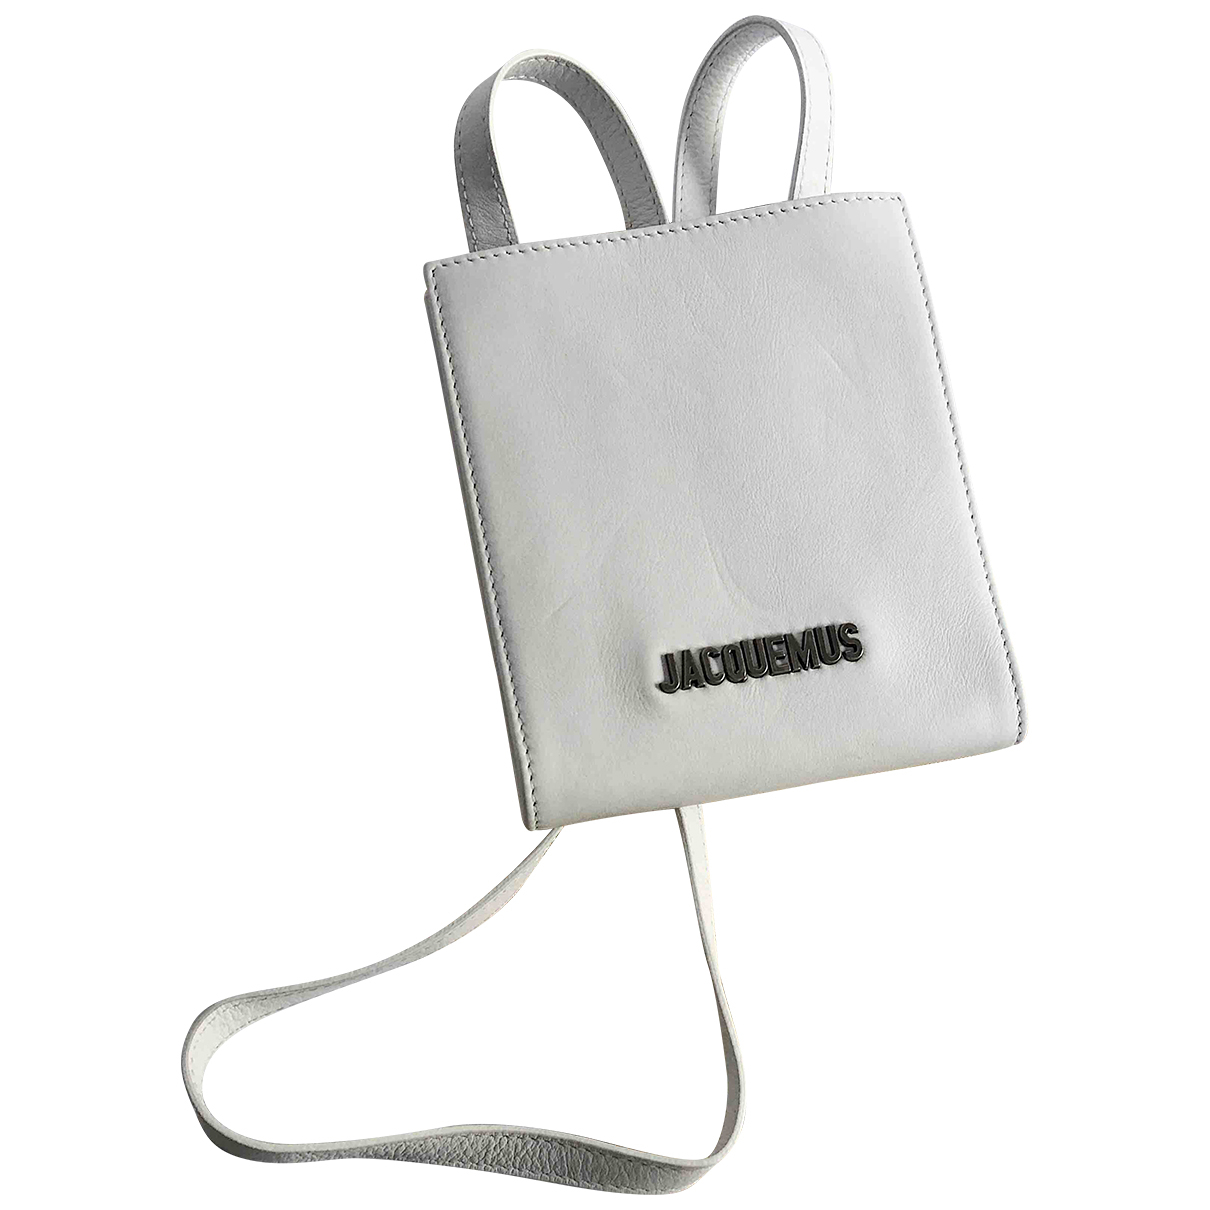 Jacquemus N White Leather Purses, wallet & cases for Women N